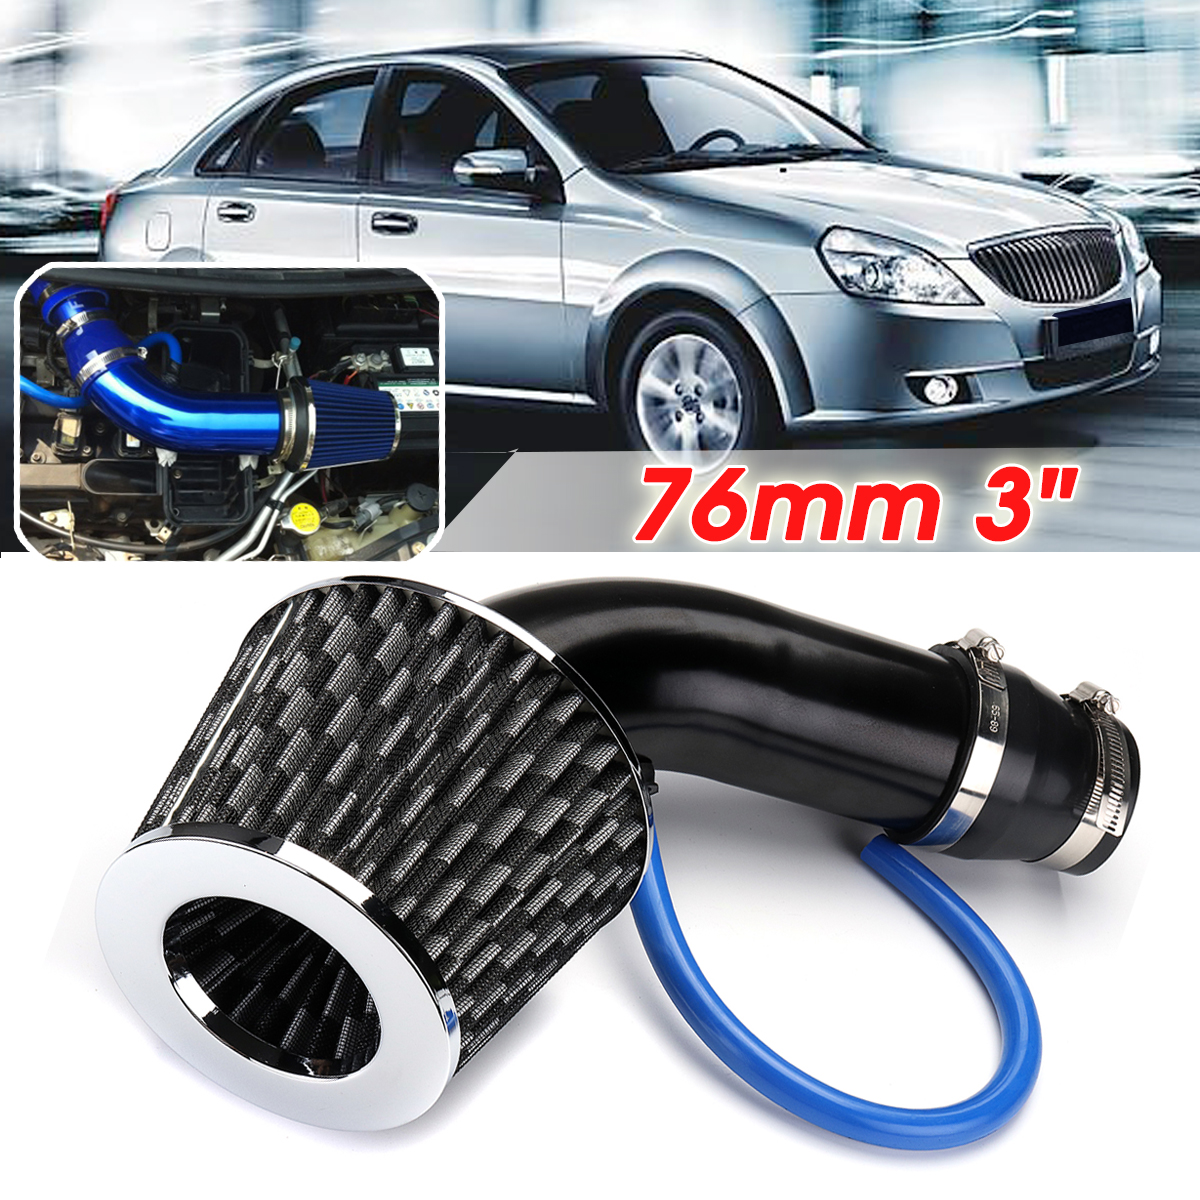 76mm 3 Inch Universal Car Cold Air Intake Filter and Alumimum Induction Kit Pipe Hose